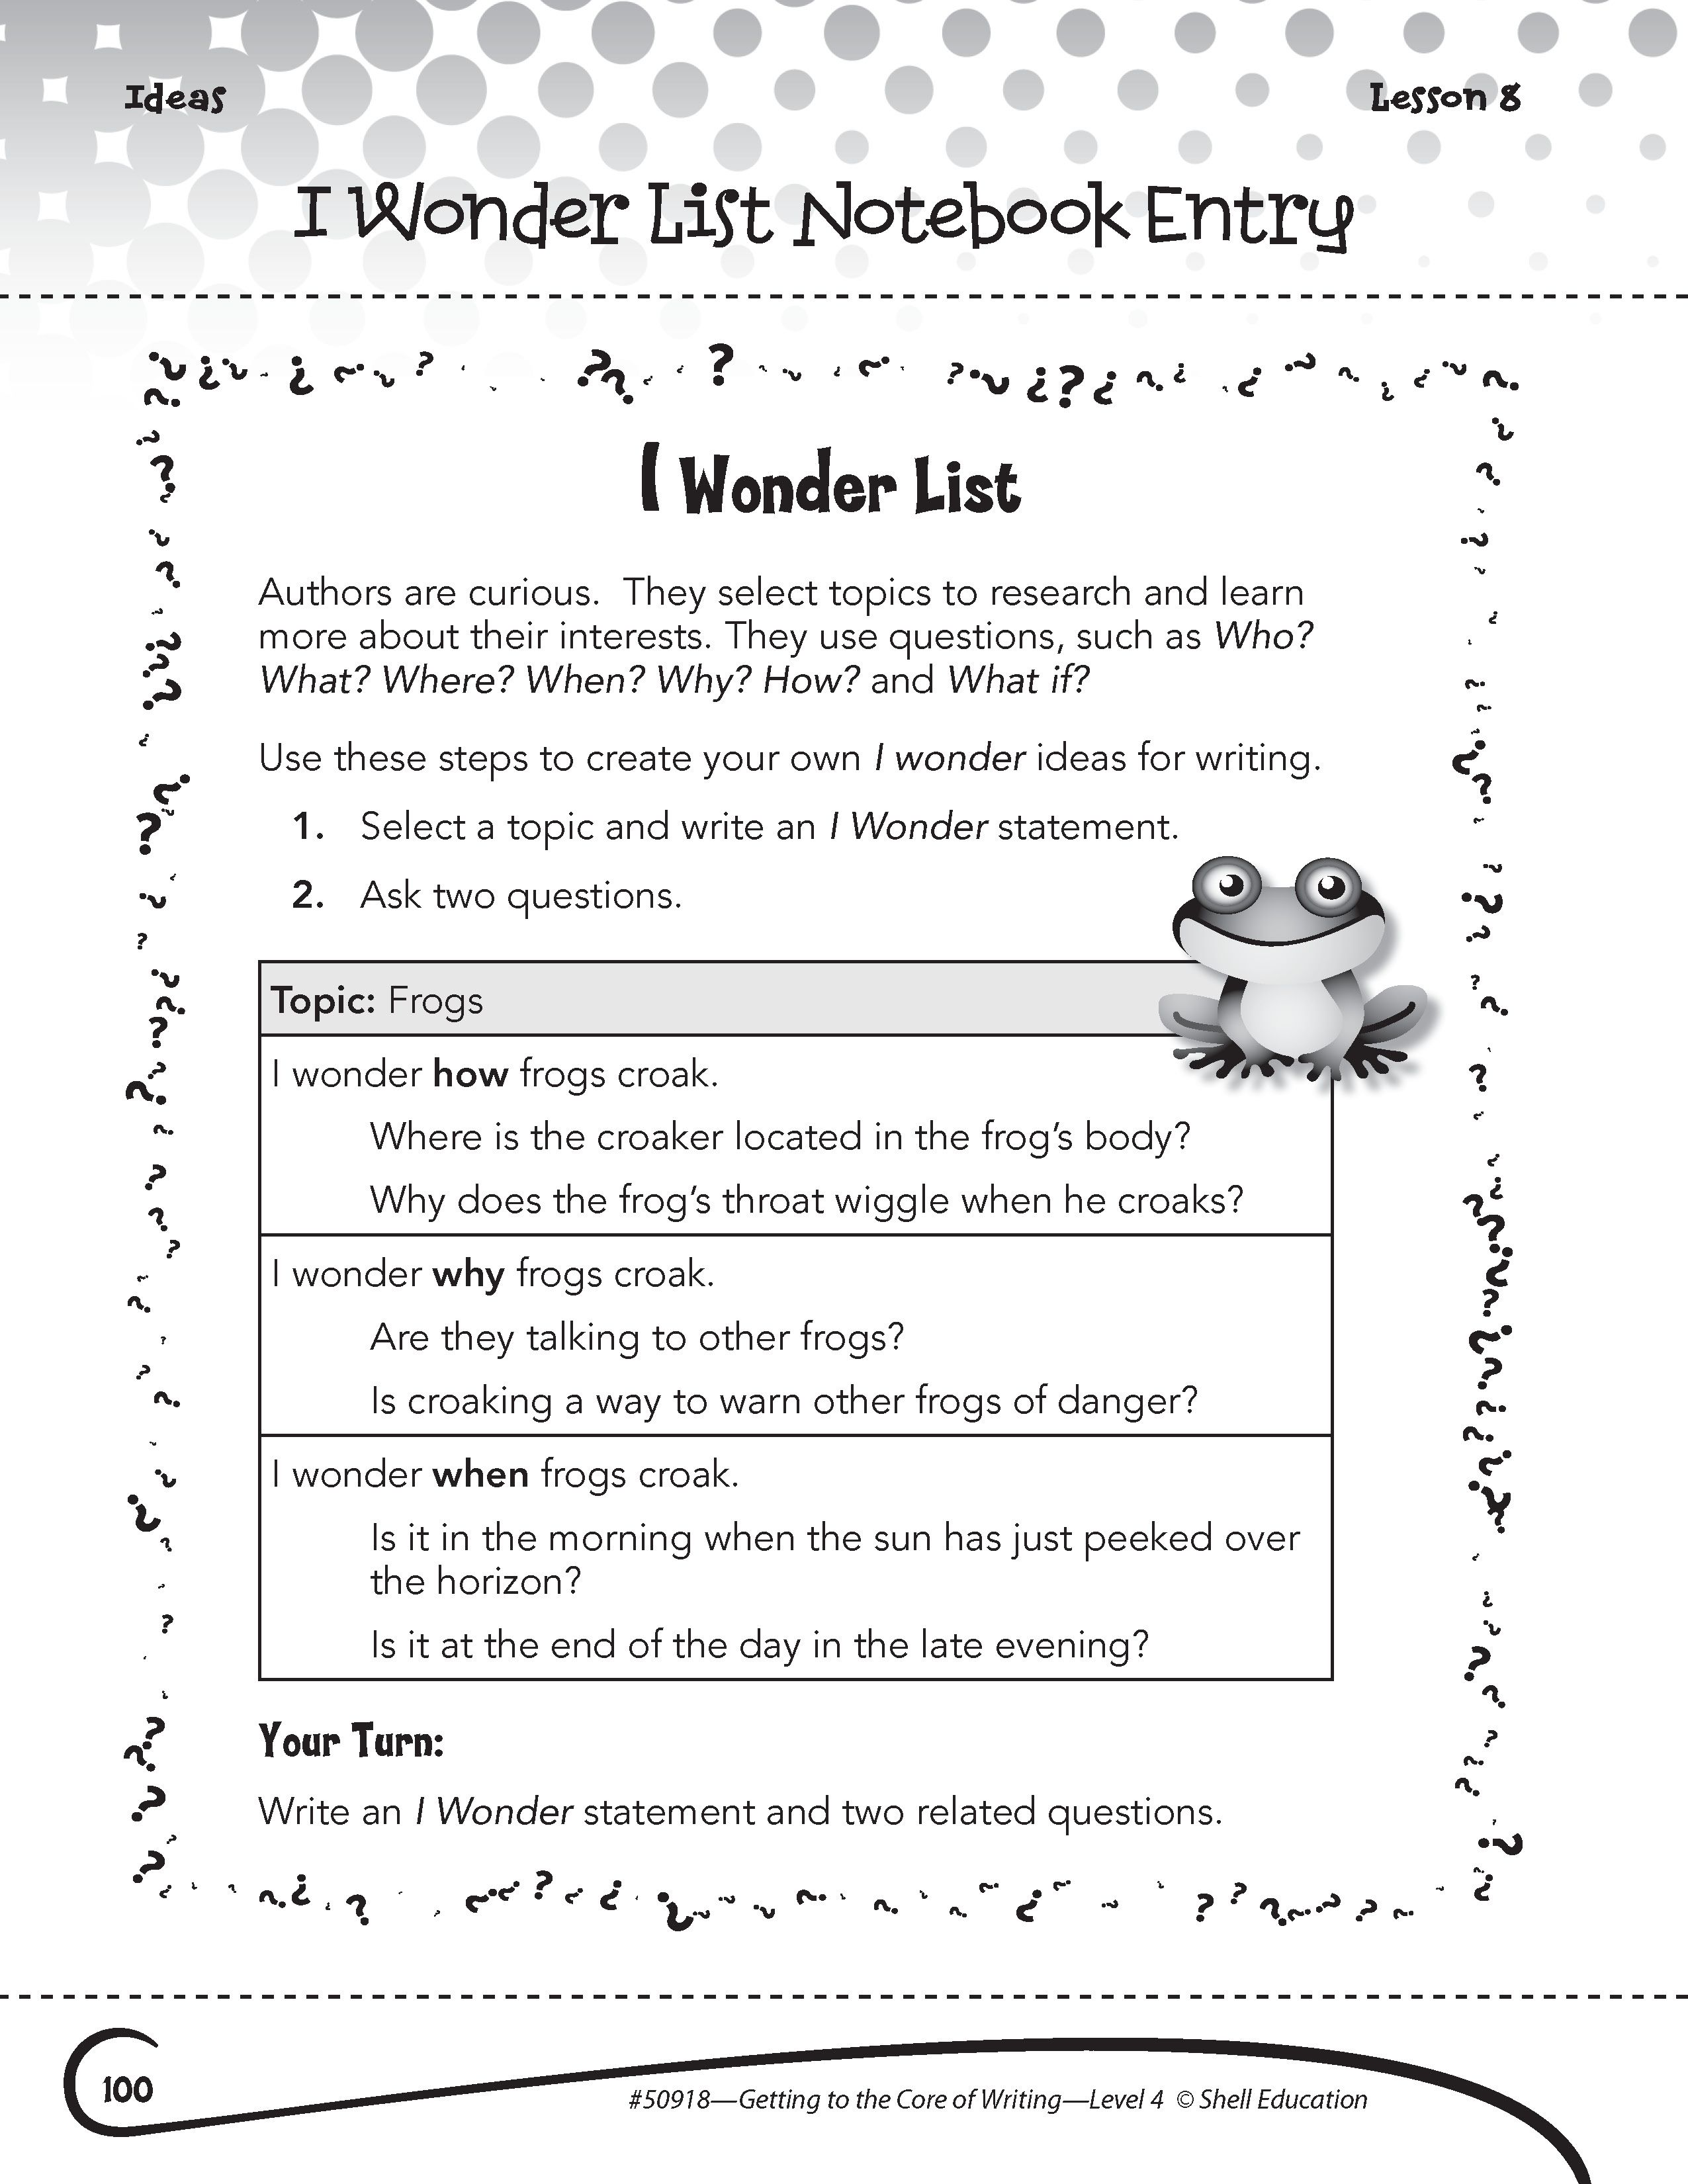 I Wonder List Notebook Entry Activity From Getting To The Core Of Writing Fourth Grade Lear Teacher Created Materials Writing Worksheets 4th Grade Writing [ 3301 x 2551 Pixel ]